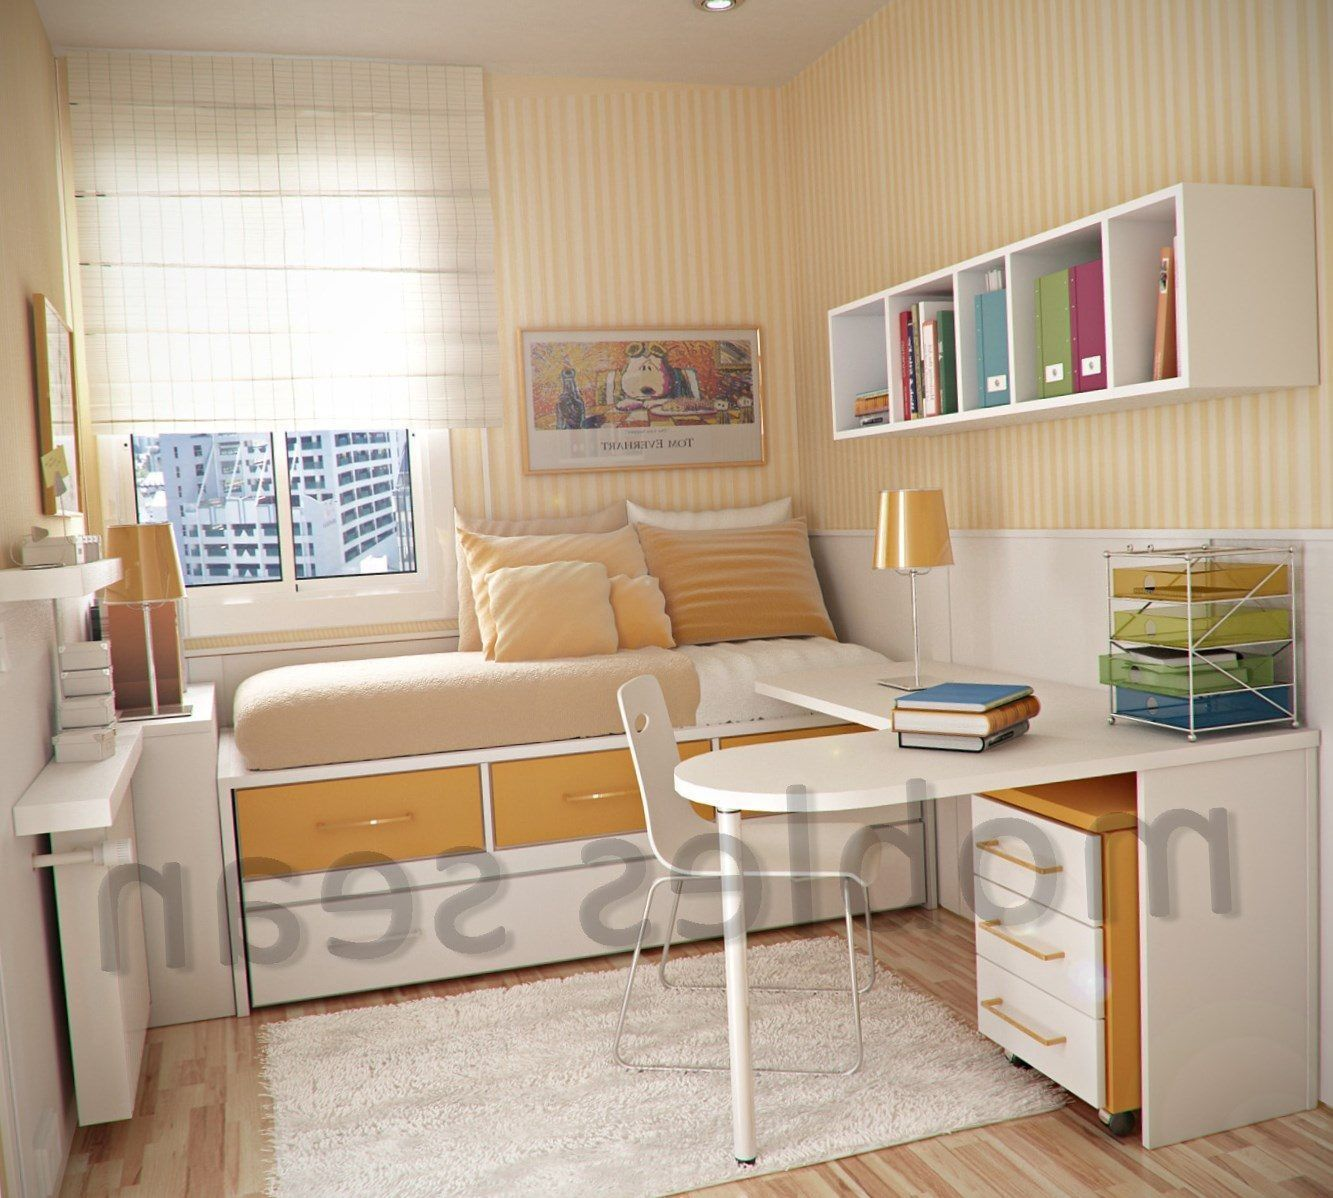 Yellow Decorating Ideas For Small Bedrooms Html on yellow wallpaper for bedrooms, yellow girls bedroom ideas, yellow accessories for bedrooms, yellow colors for bedrooms,